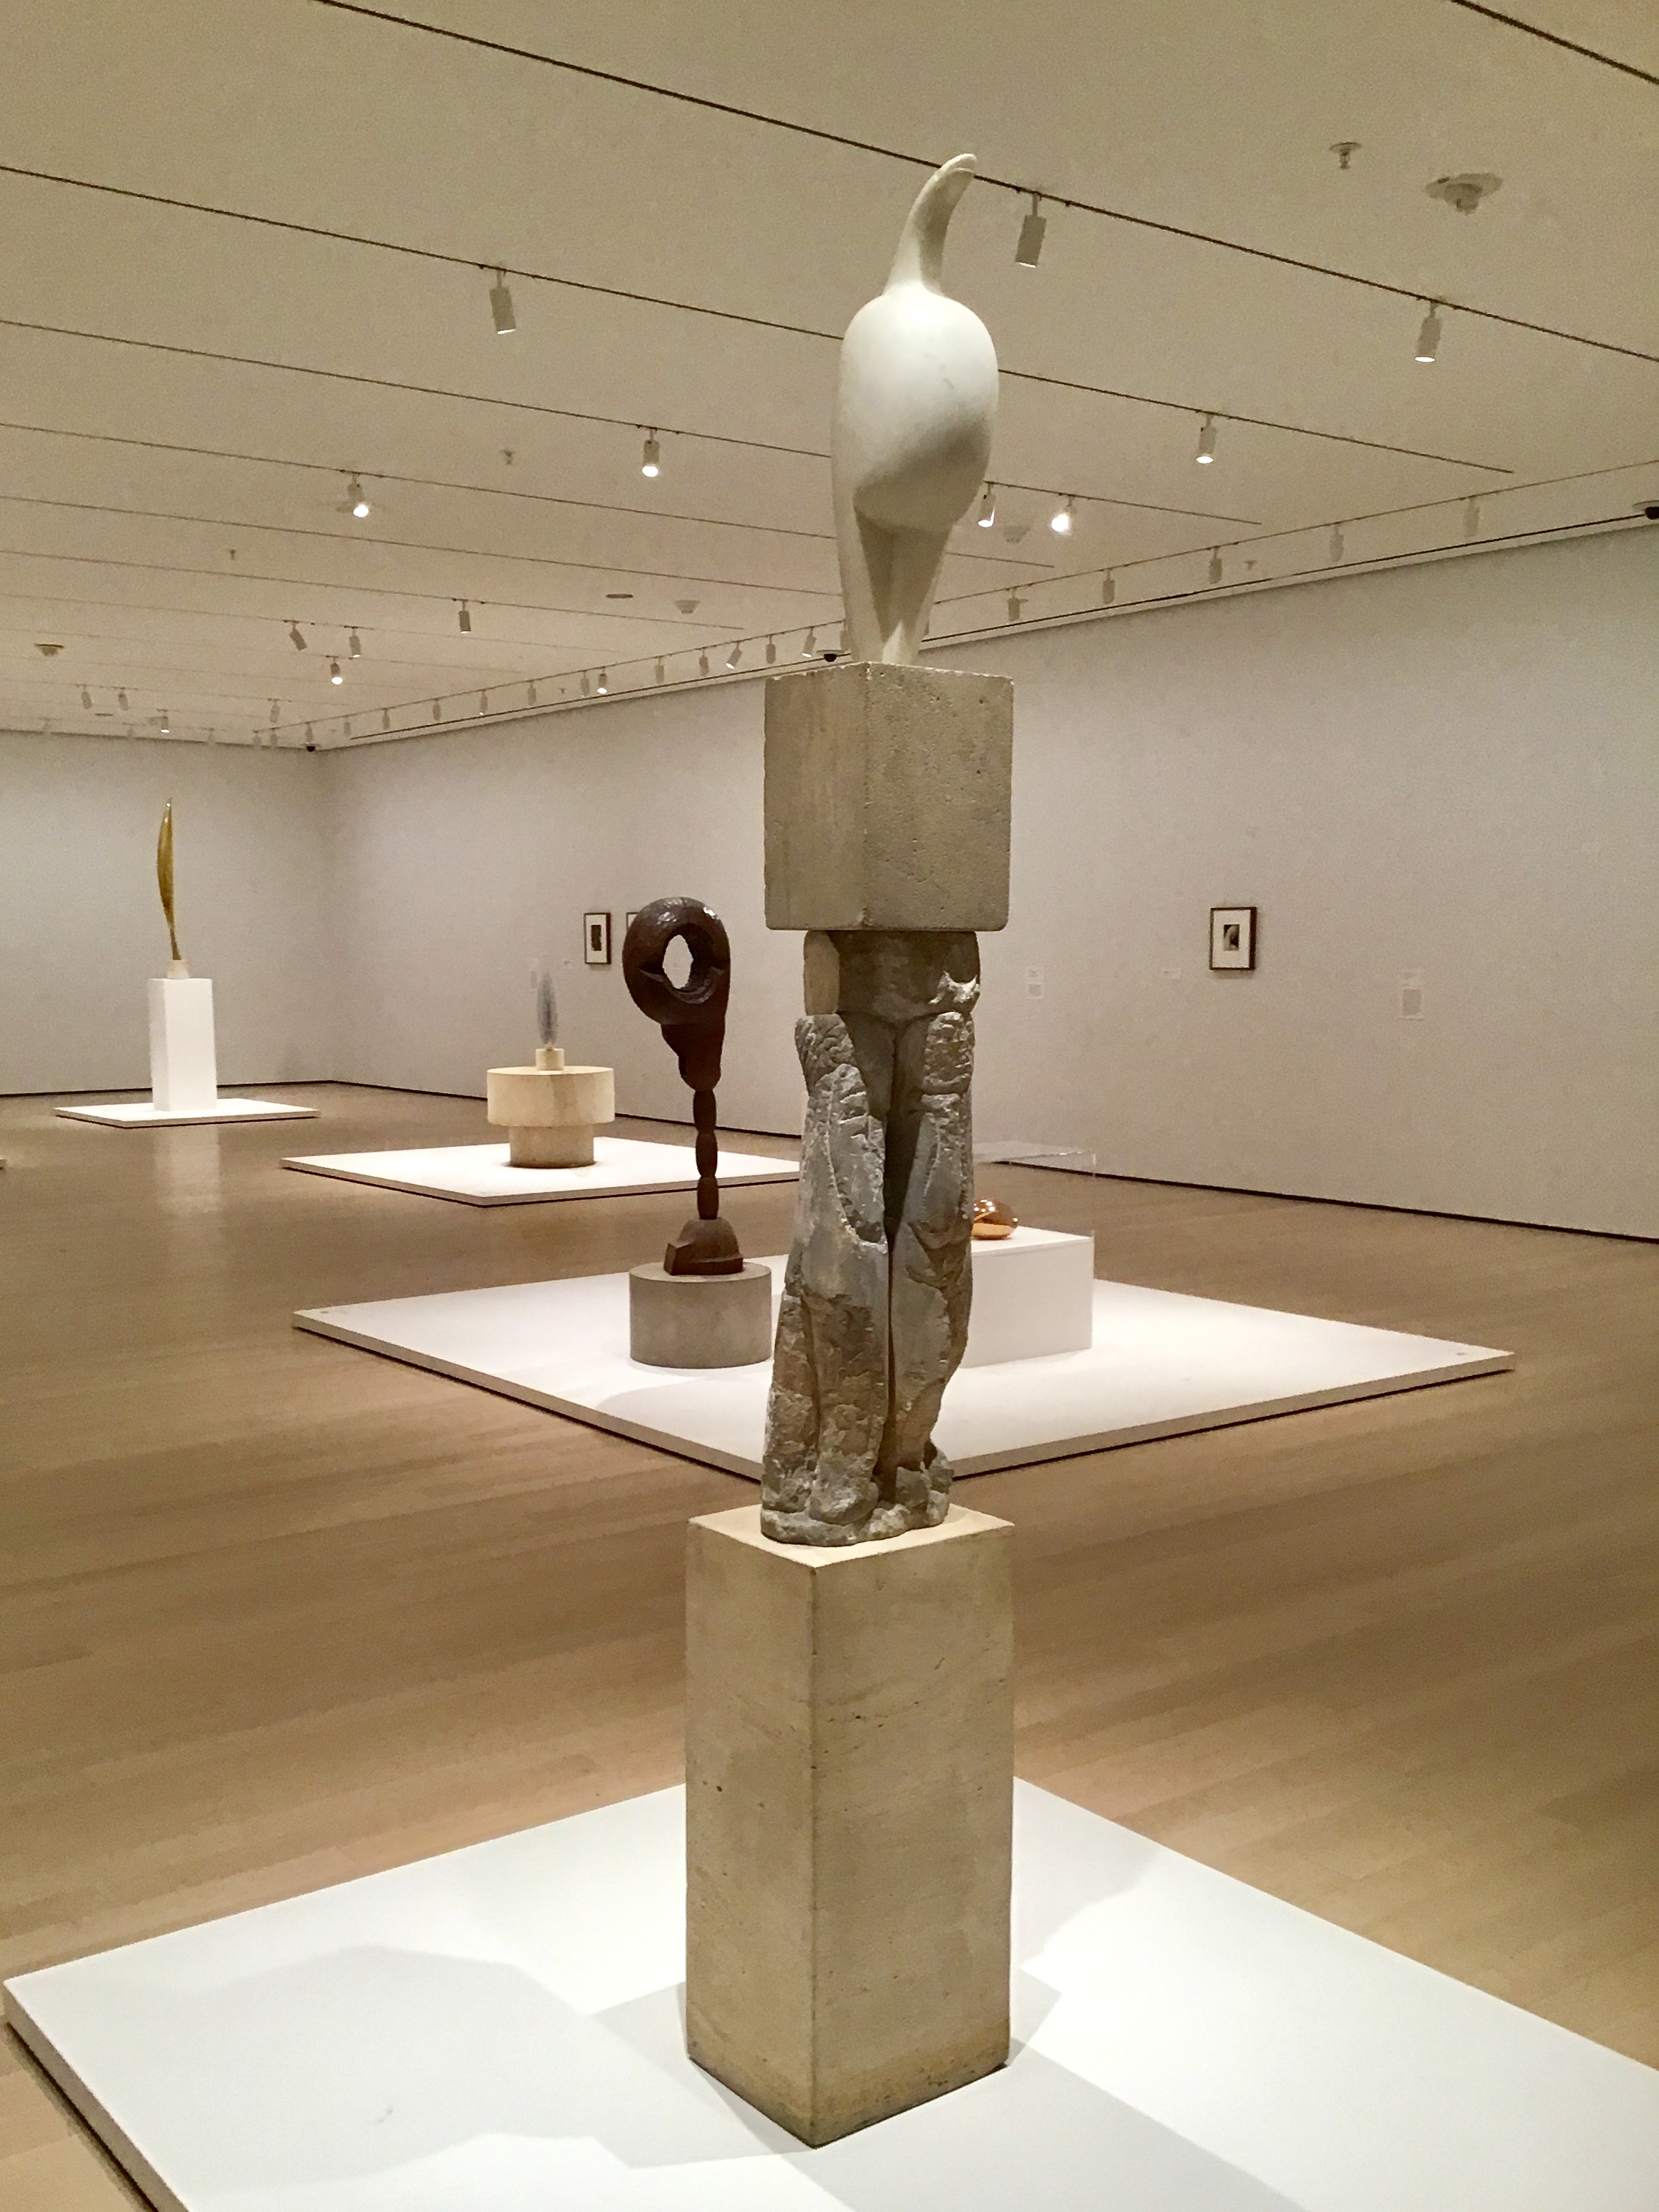 Constantin Brancusi's Sculpture Exhibition at the Museum of Modern Art in New York City